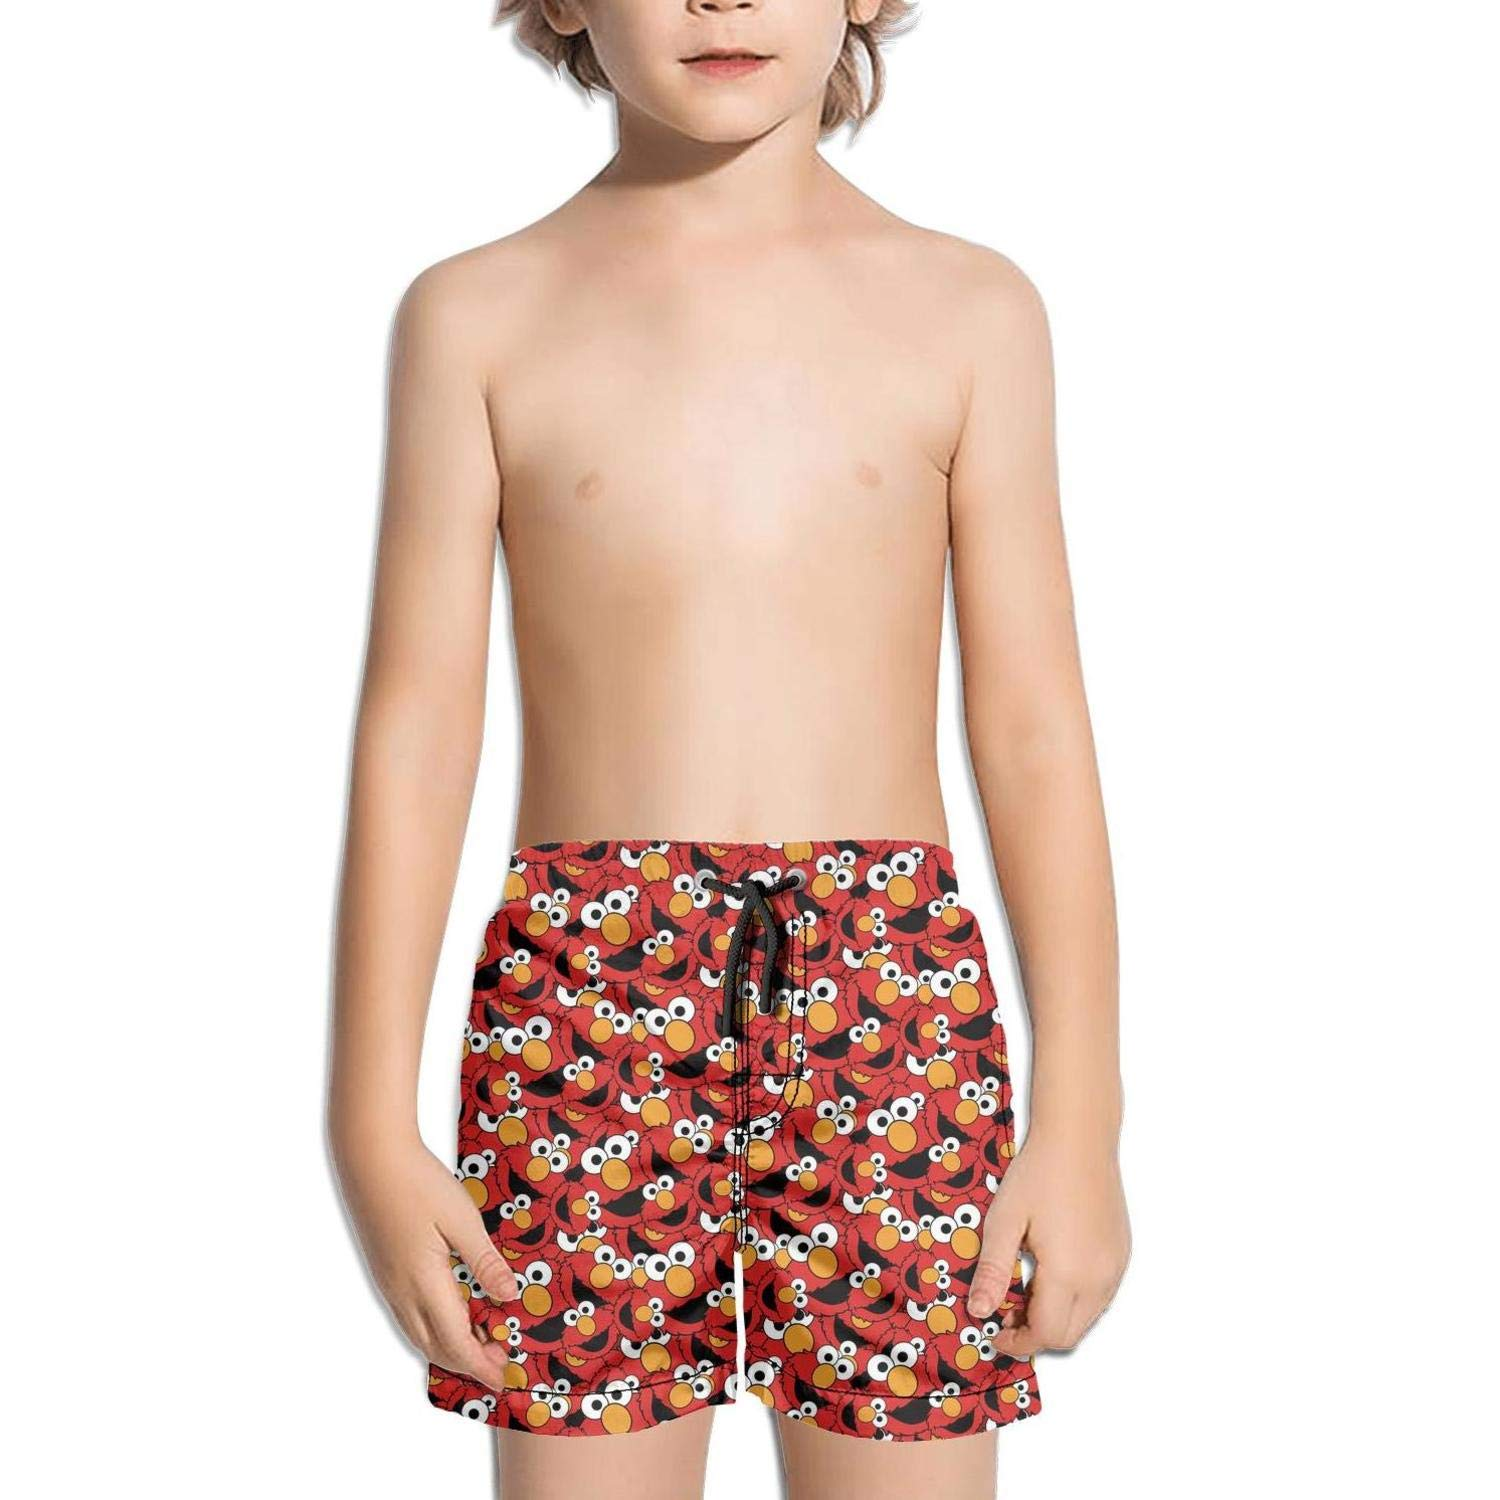 hhhuiopp Kids Waterproof Cool Slim Fit Stretch Board Swimming Trunks Shorts